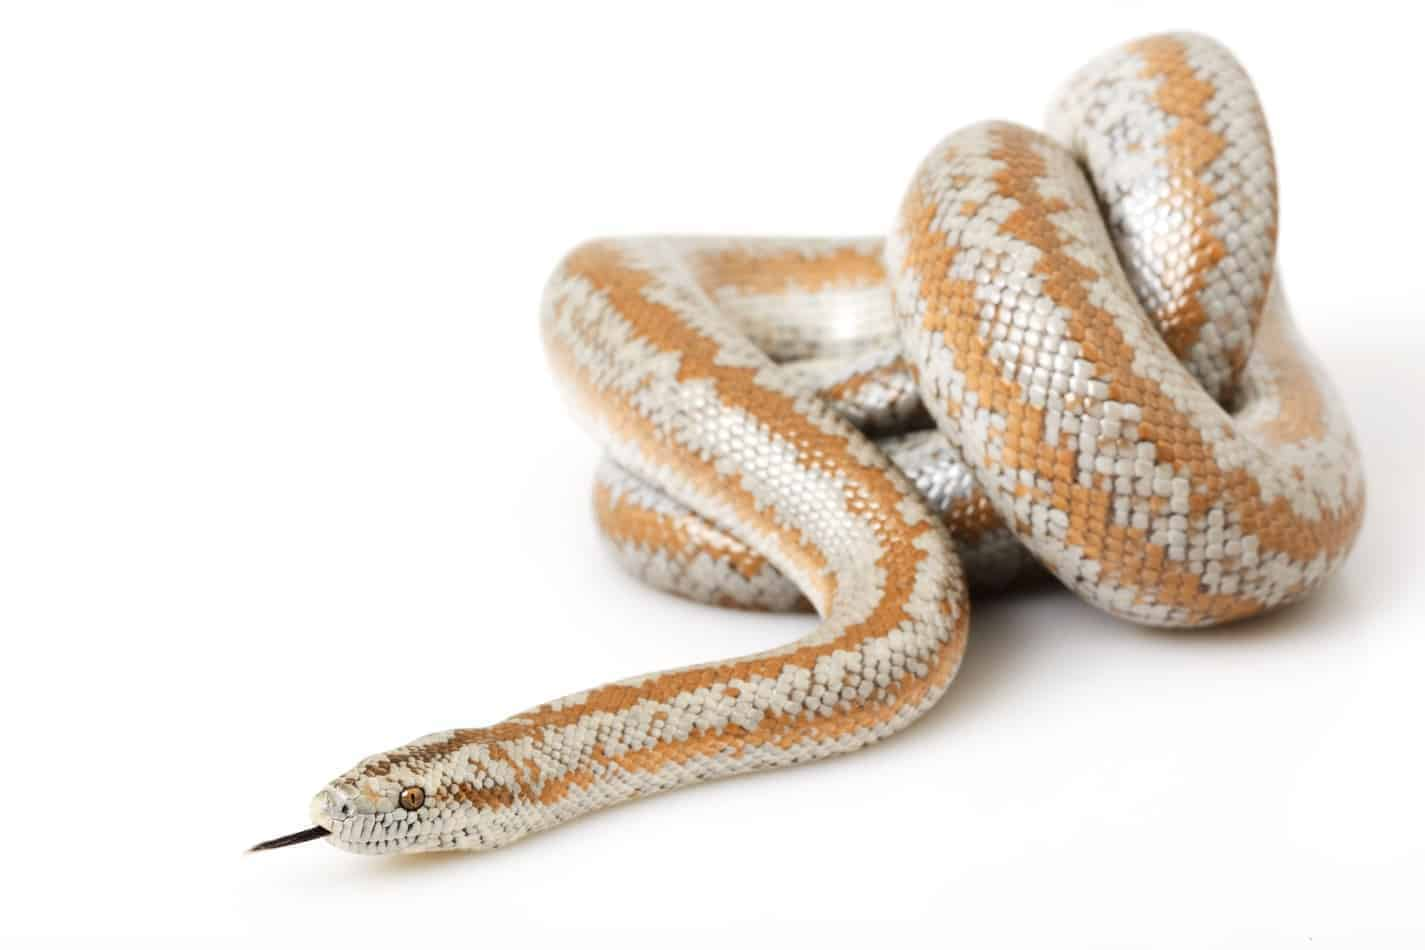 Can Rosy Boa Snakes Live Together In One Cage?